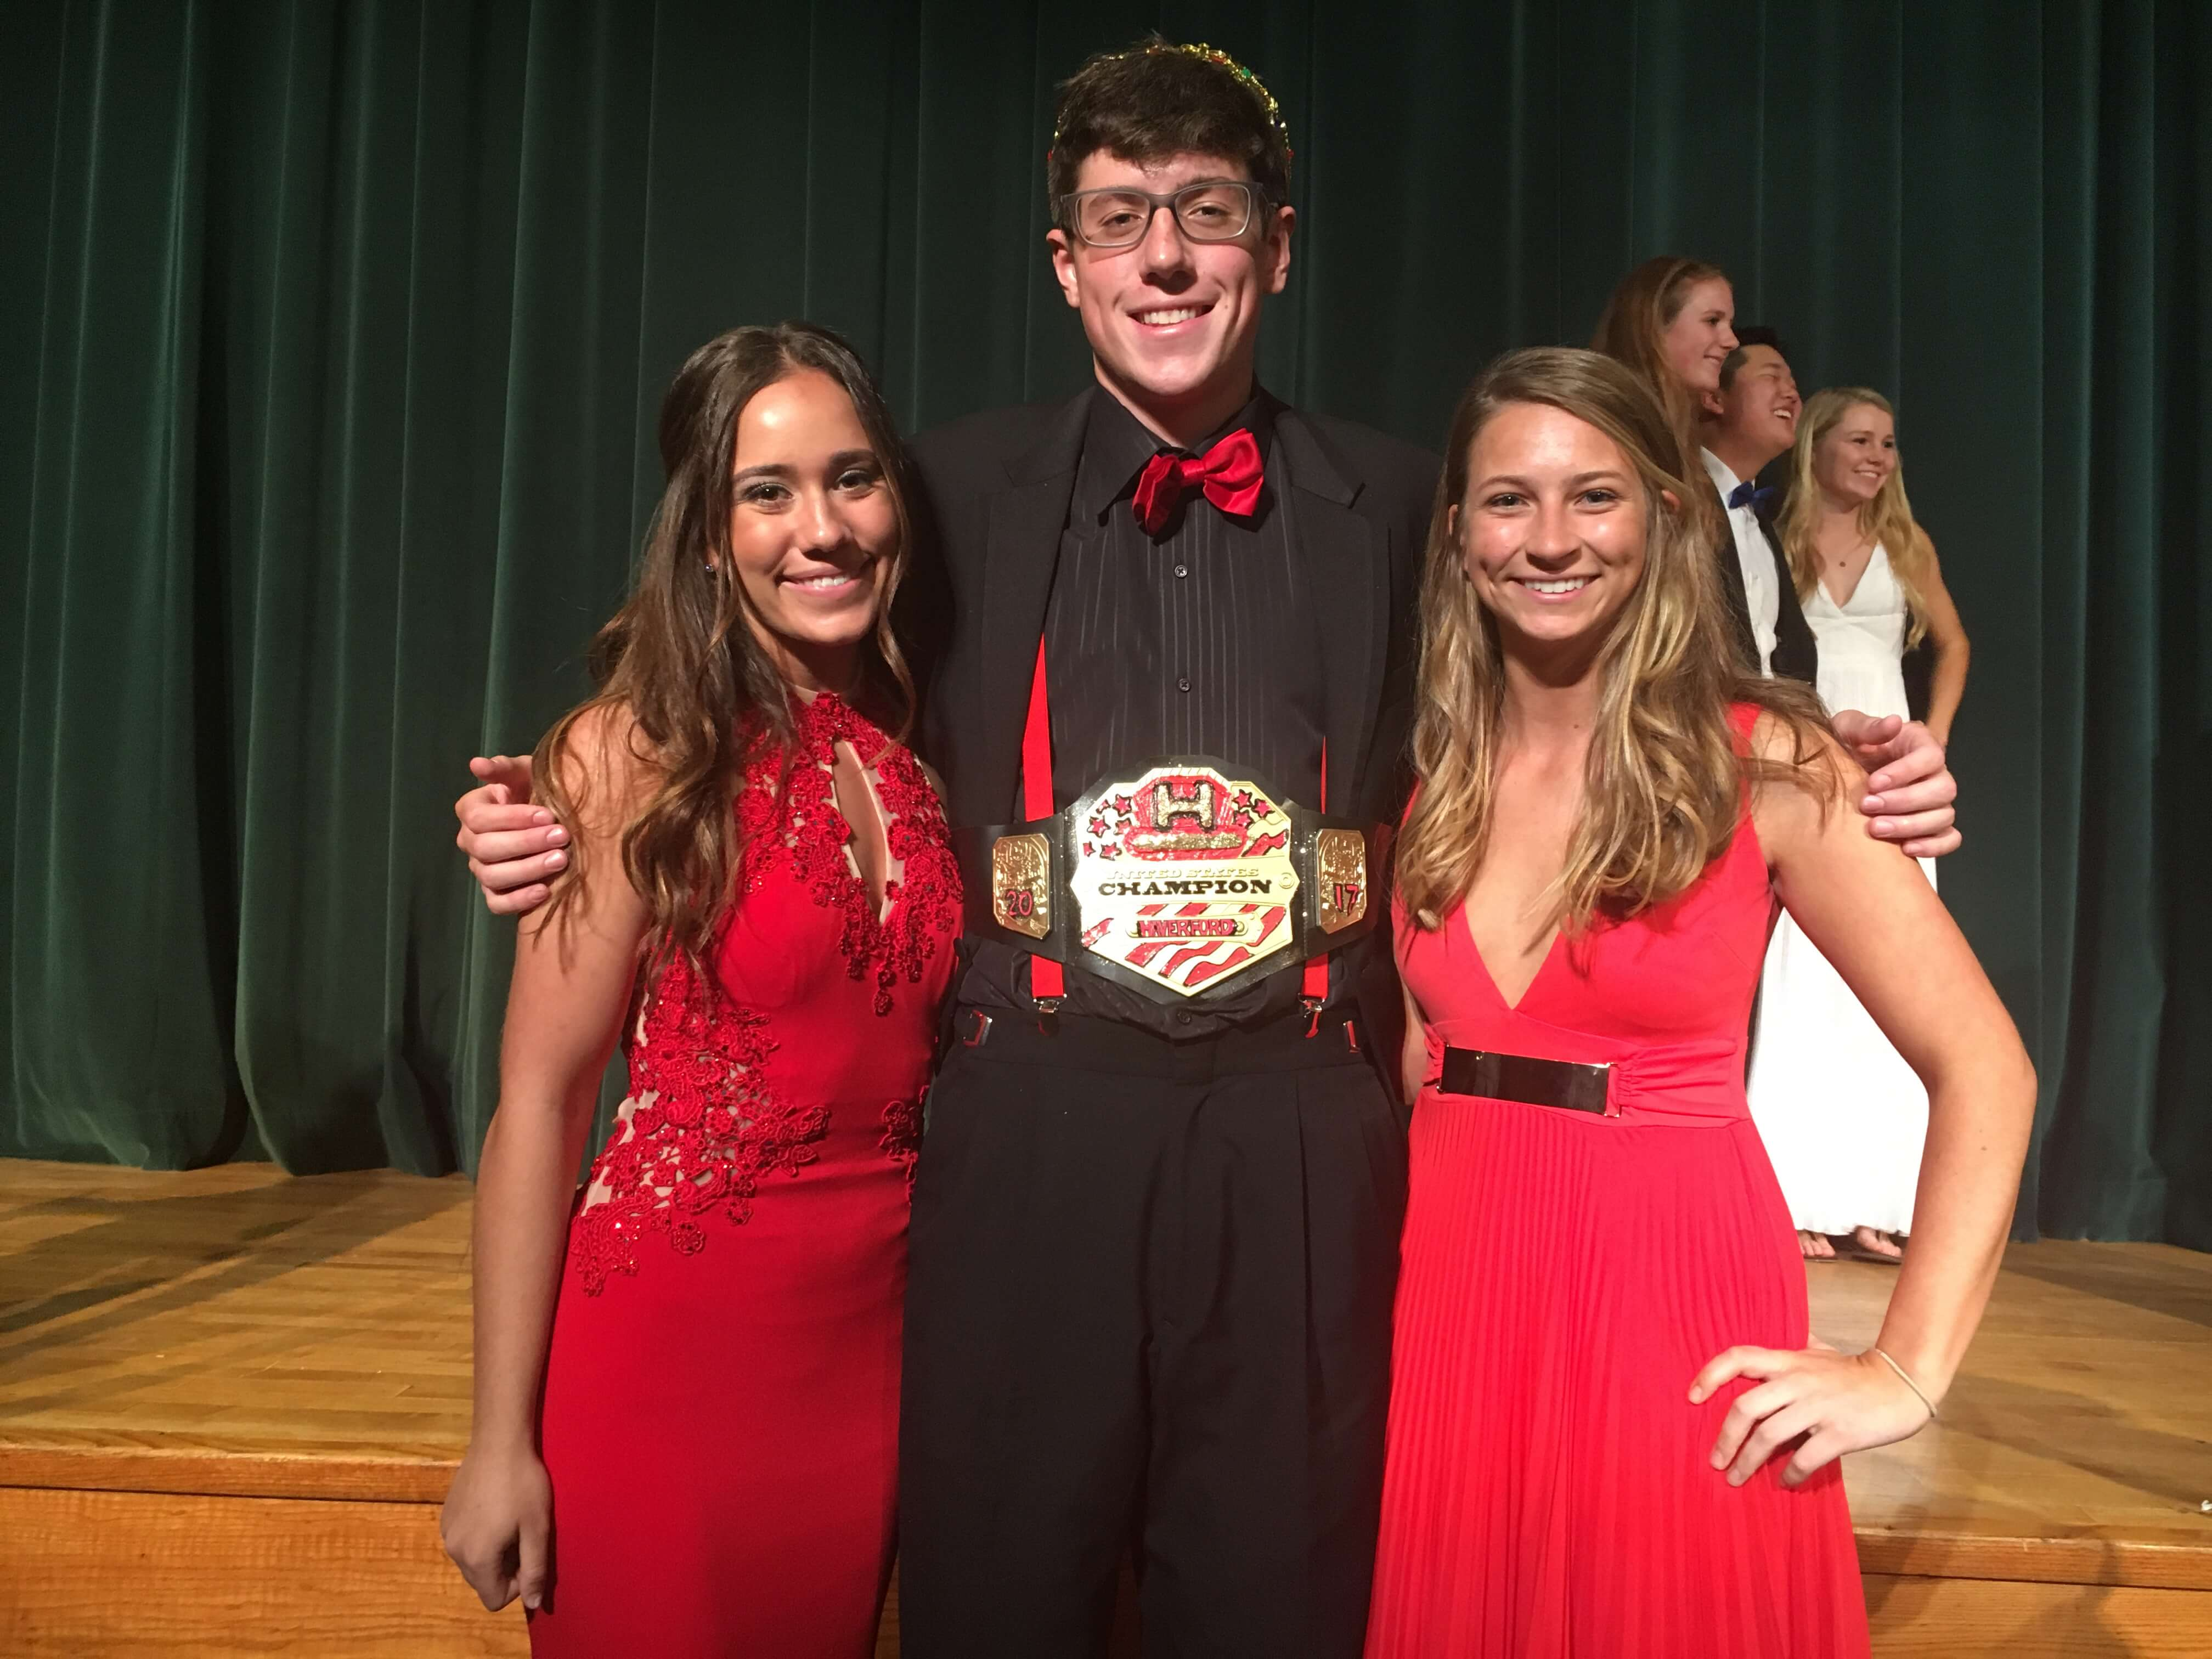 Senior escorts, Gabrielle Gentile and Amira Gallagher, flank Mr. Haverford 2017, Tyler Kimble, in the conclusion of the event.